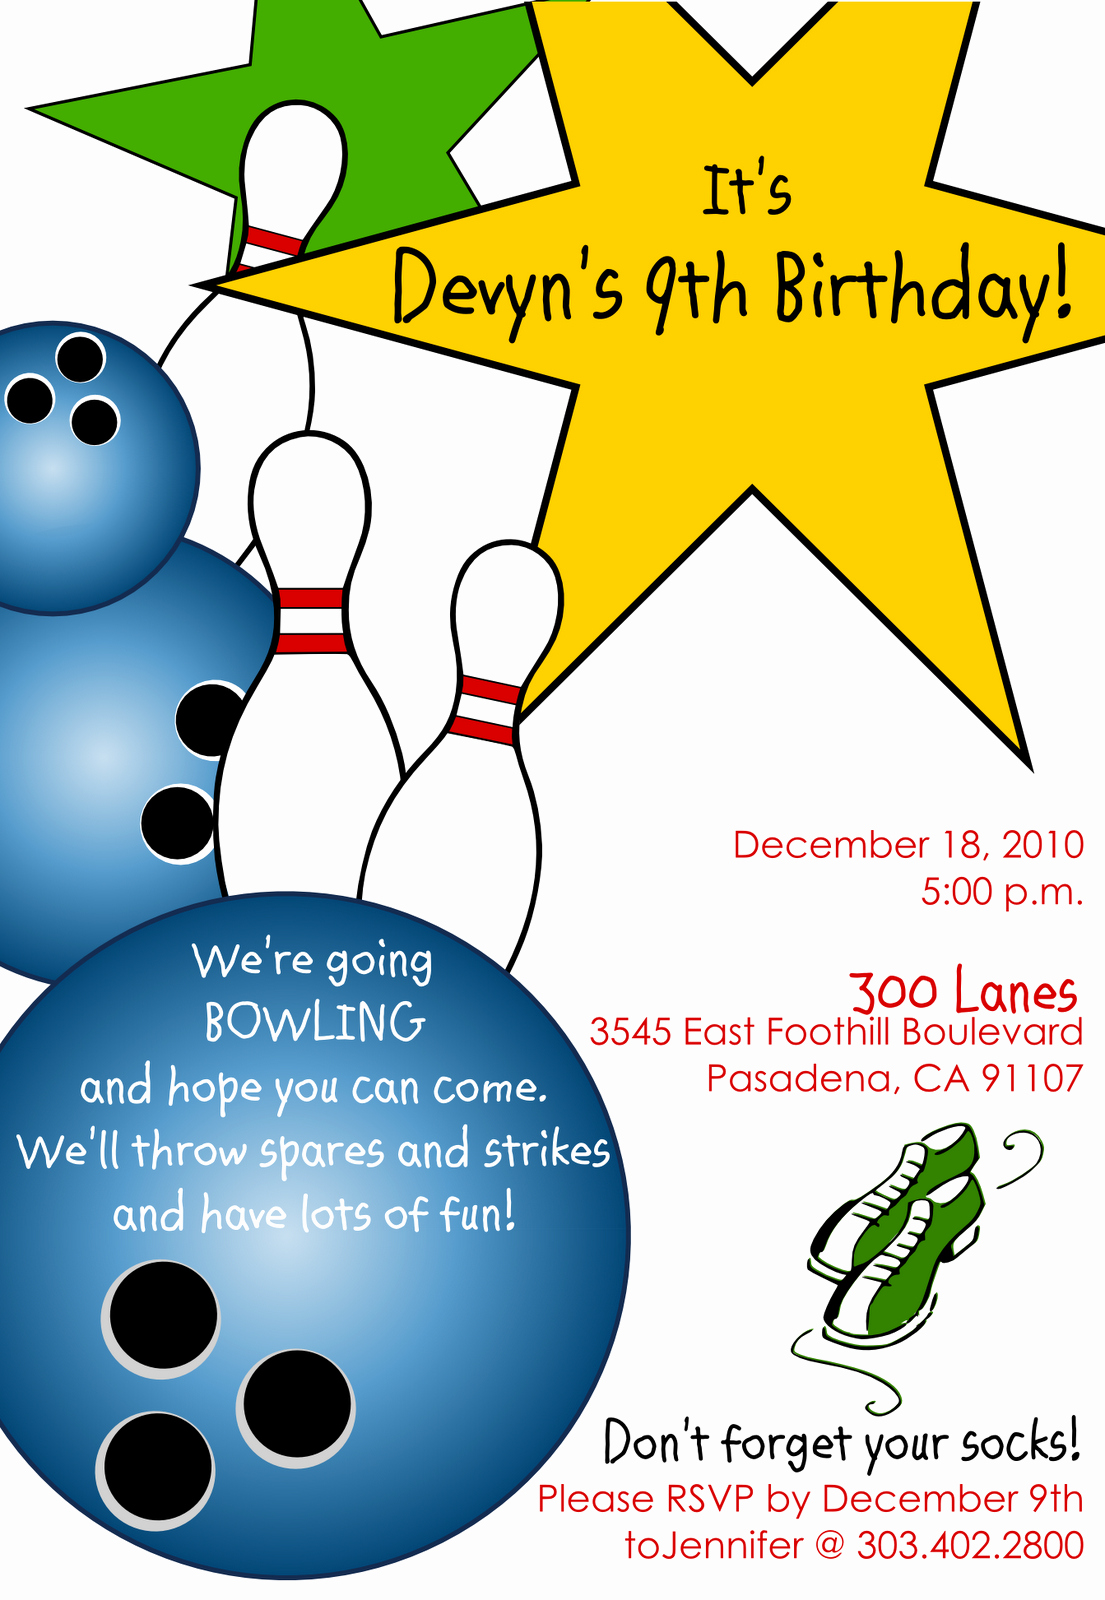 Bowling Party Invites Template Awesome 40th Birthday Ideas Birthday Invitation Templates Bowling